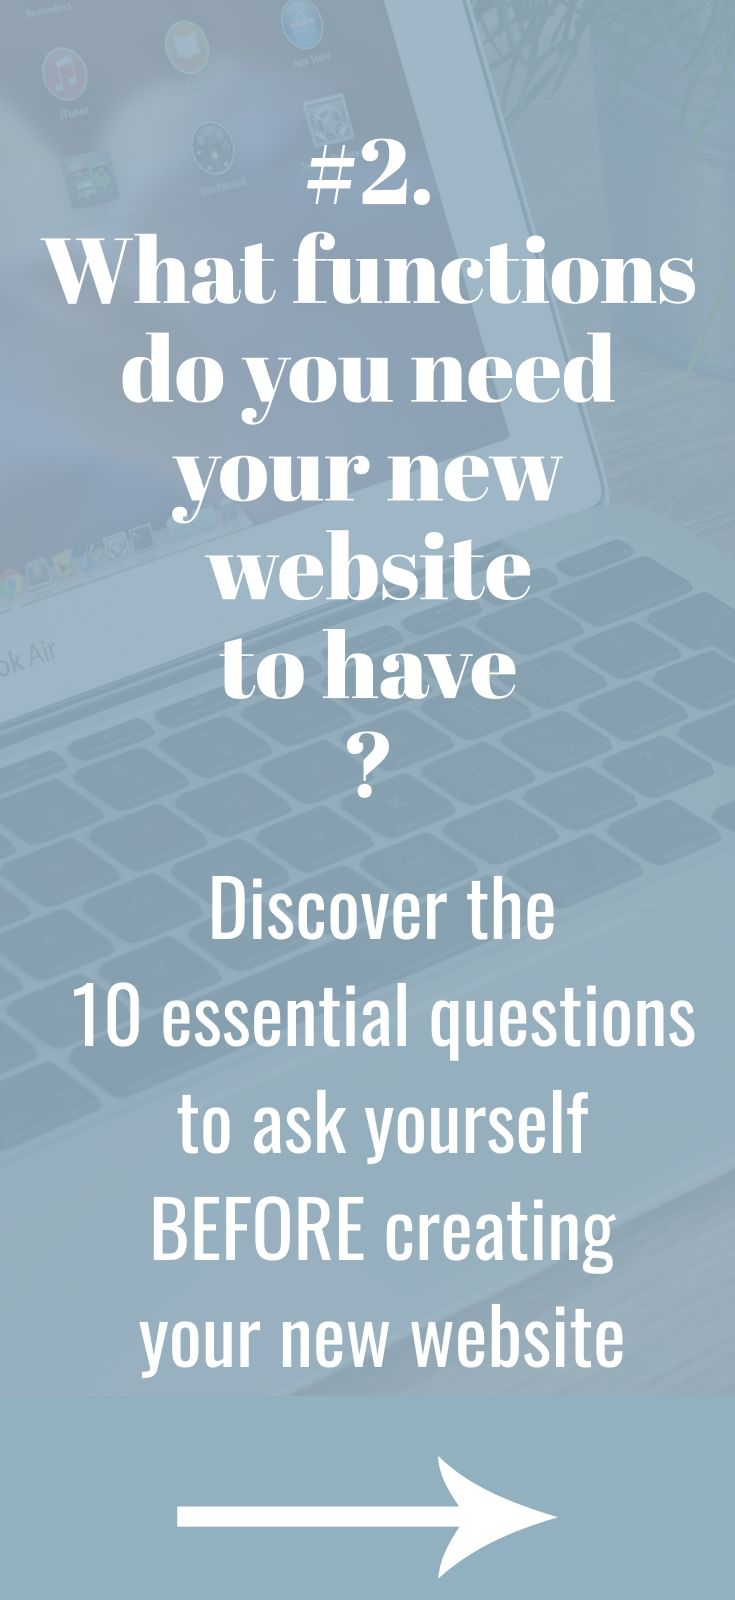 Before you start work on your new website, there are 10 essential questions you should ask yourself first. Your website is the most powerful online marketing tool for your small business - this post will help you get it right.